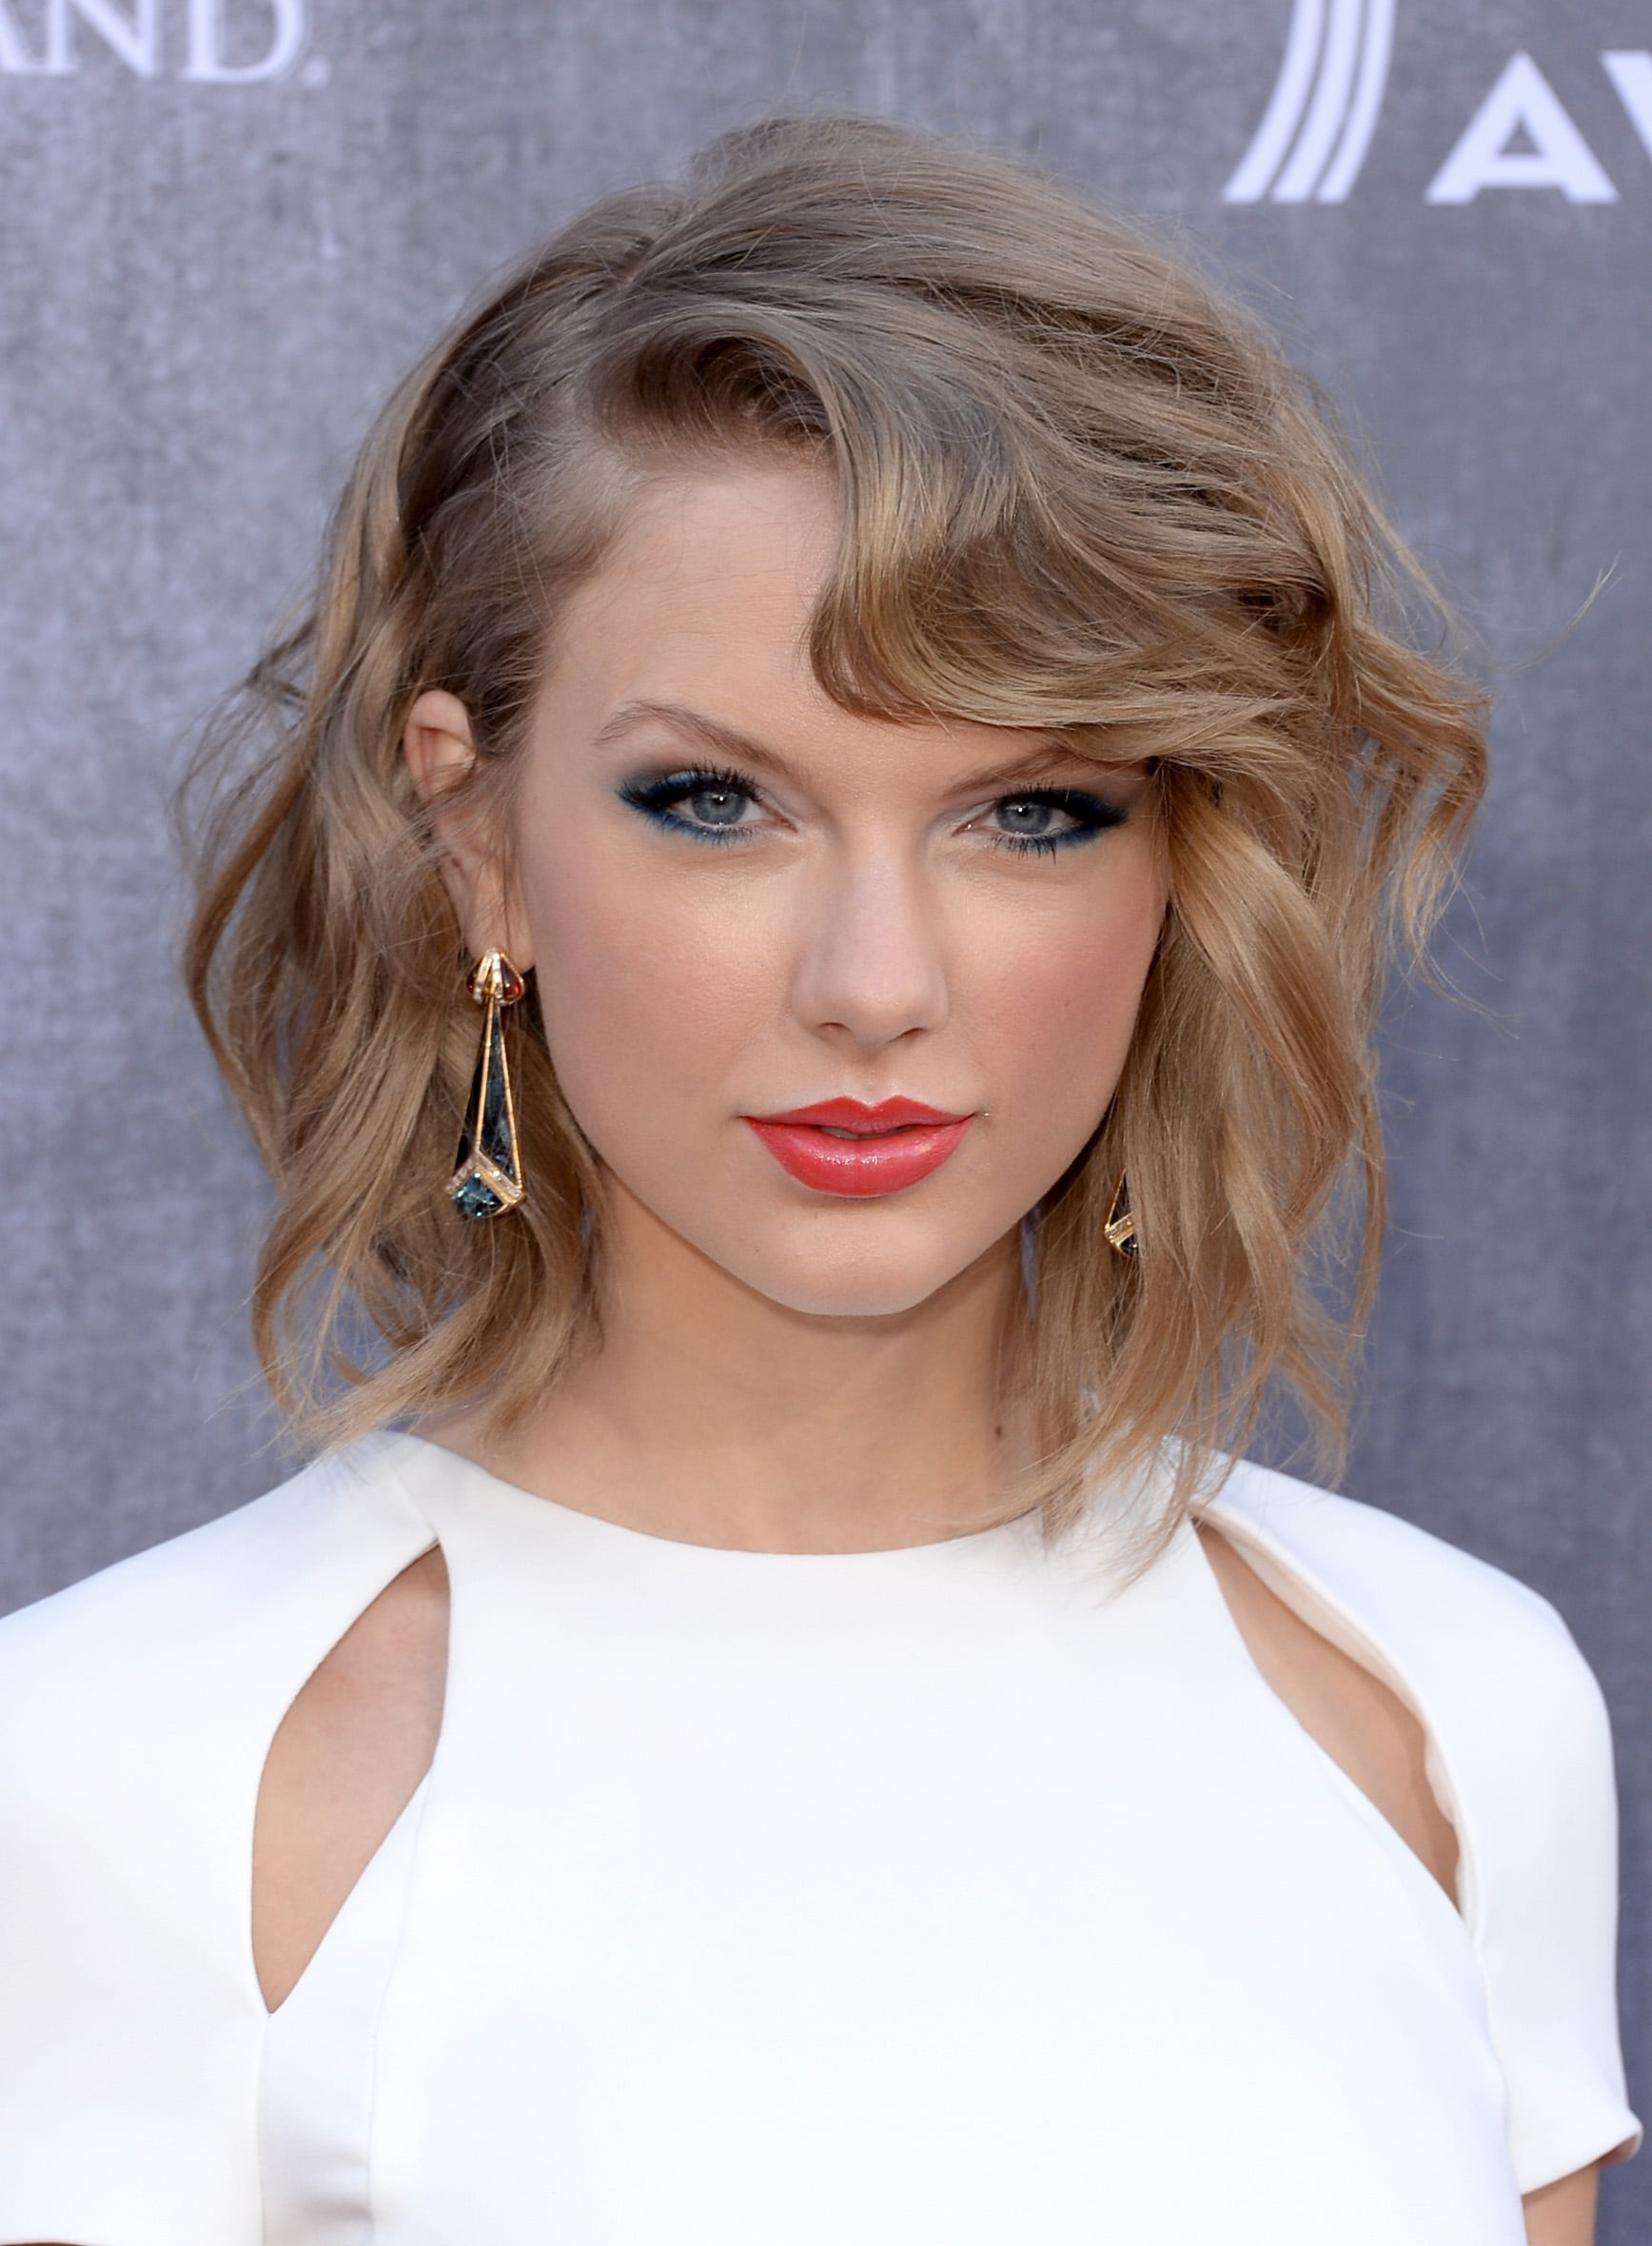 Copy Taylor Swift S Blue Eye Makeup At Country Music Awards